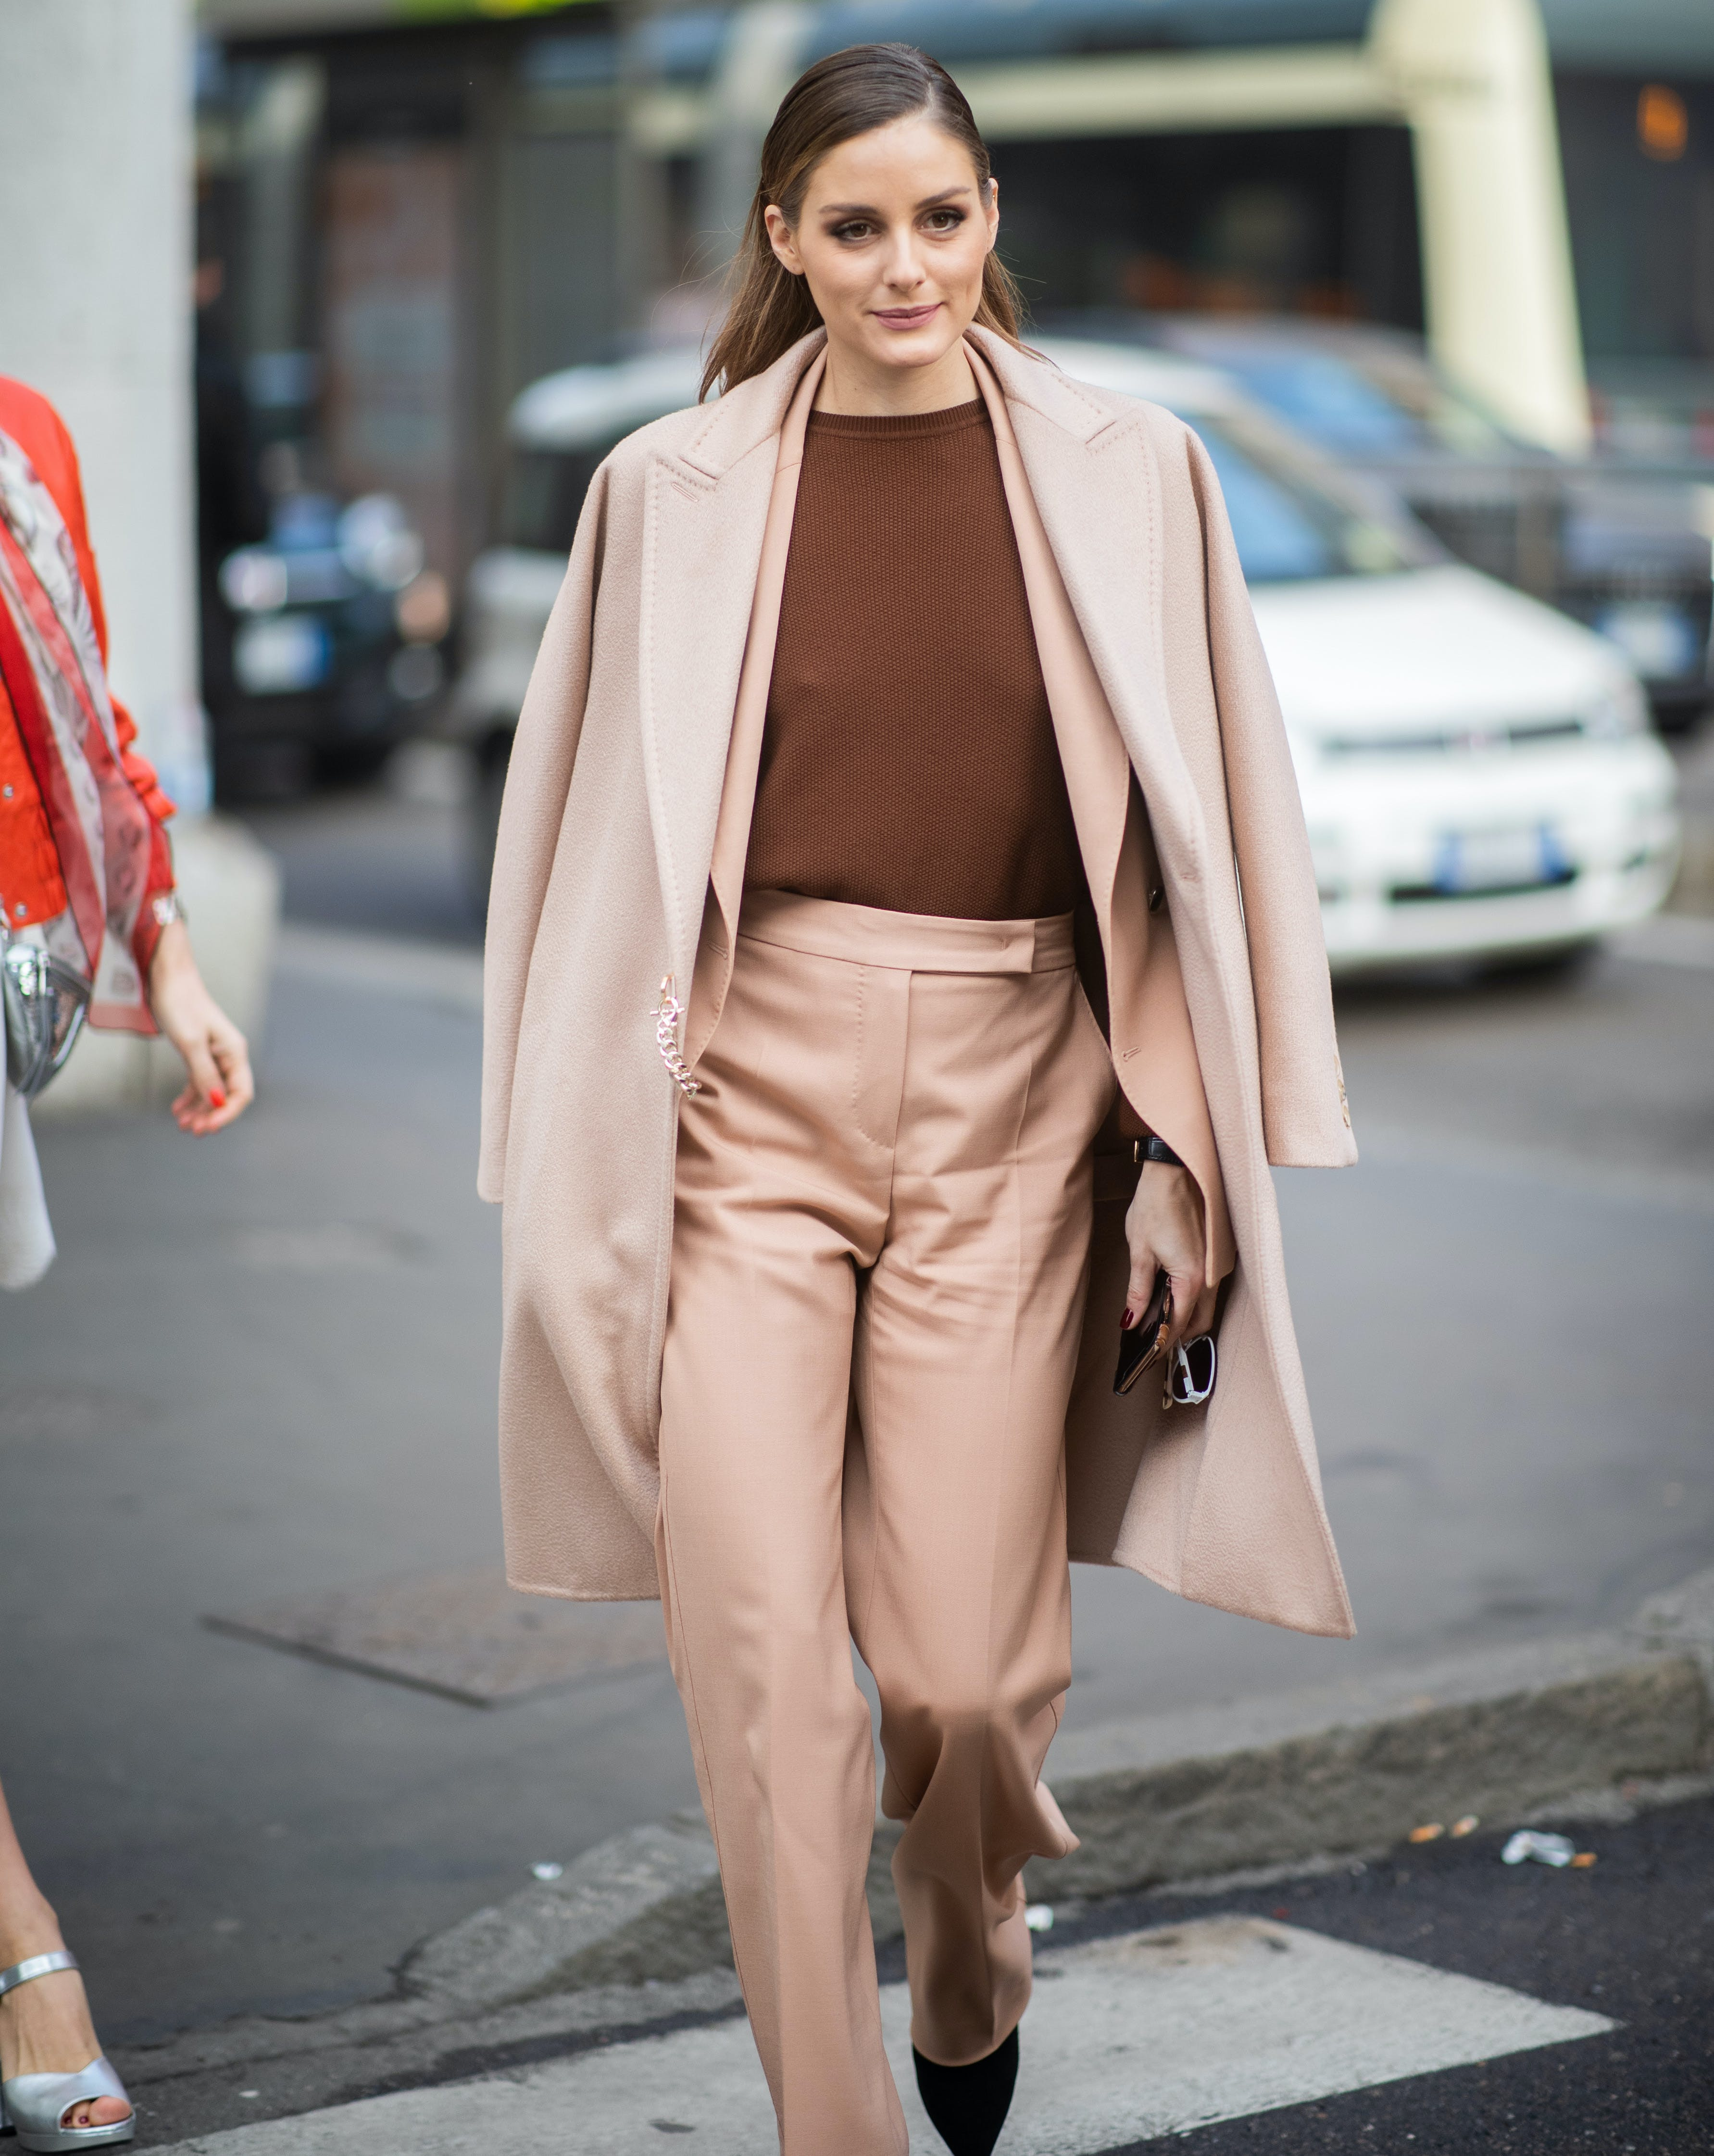 olivia palermo wearing a beige suit